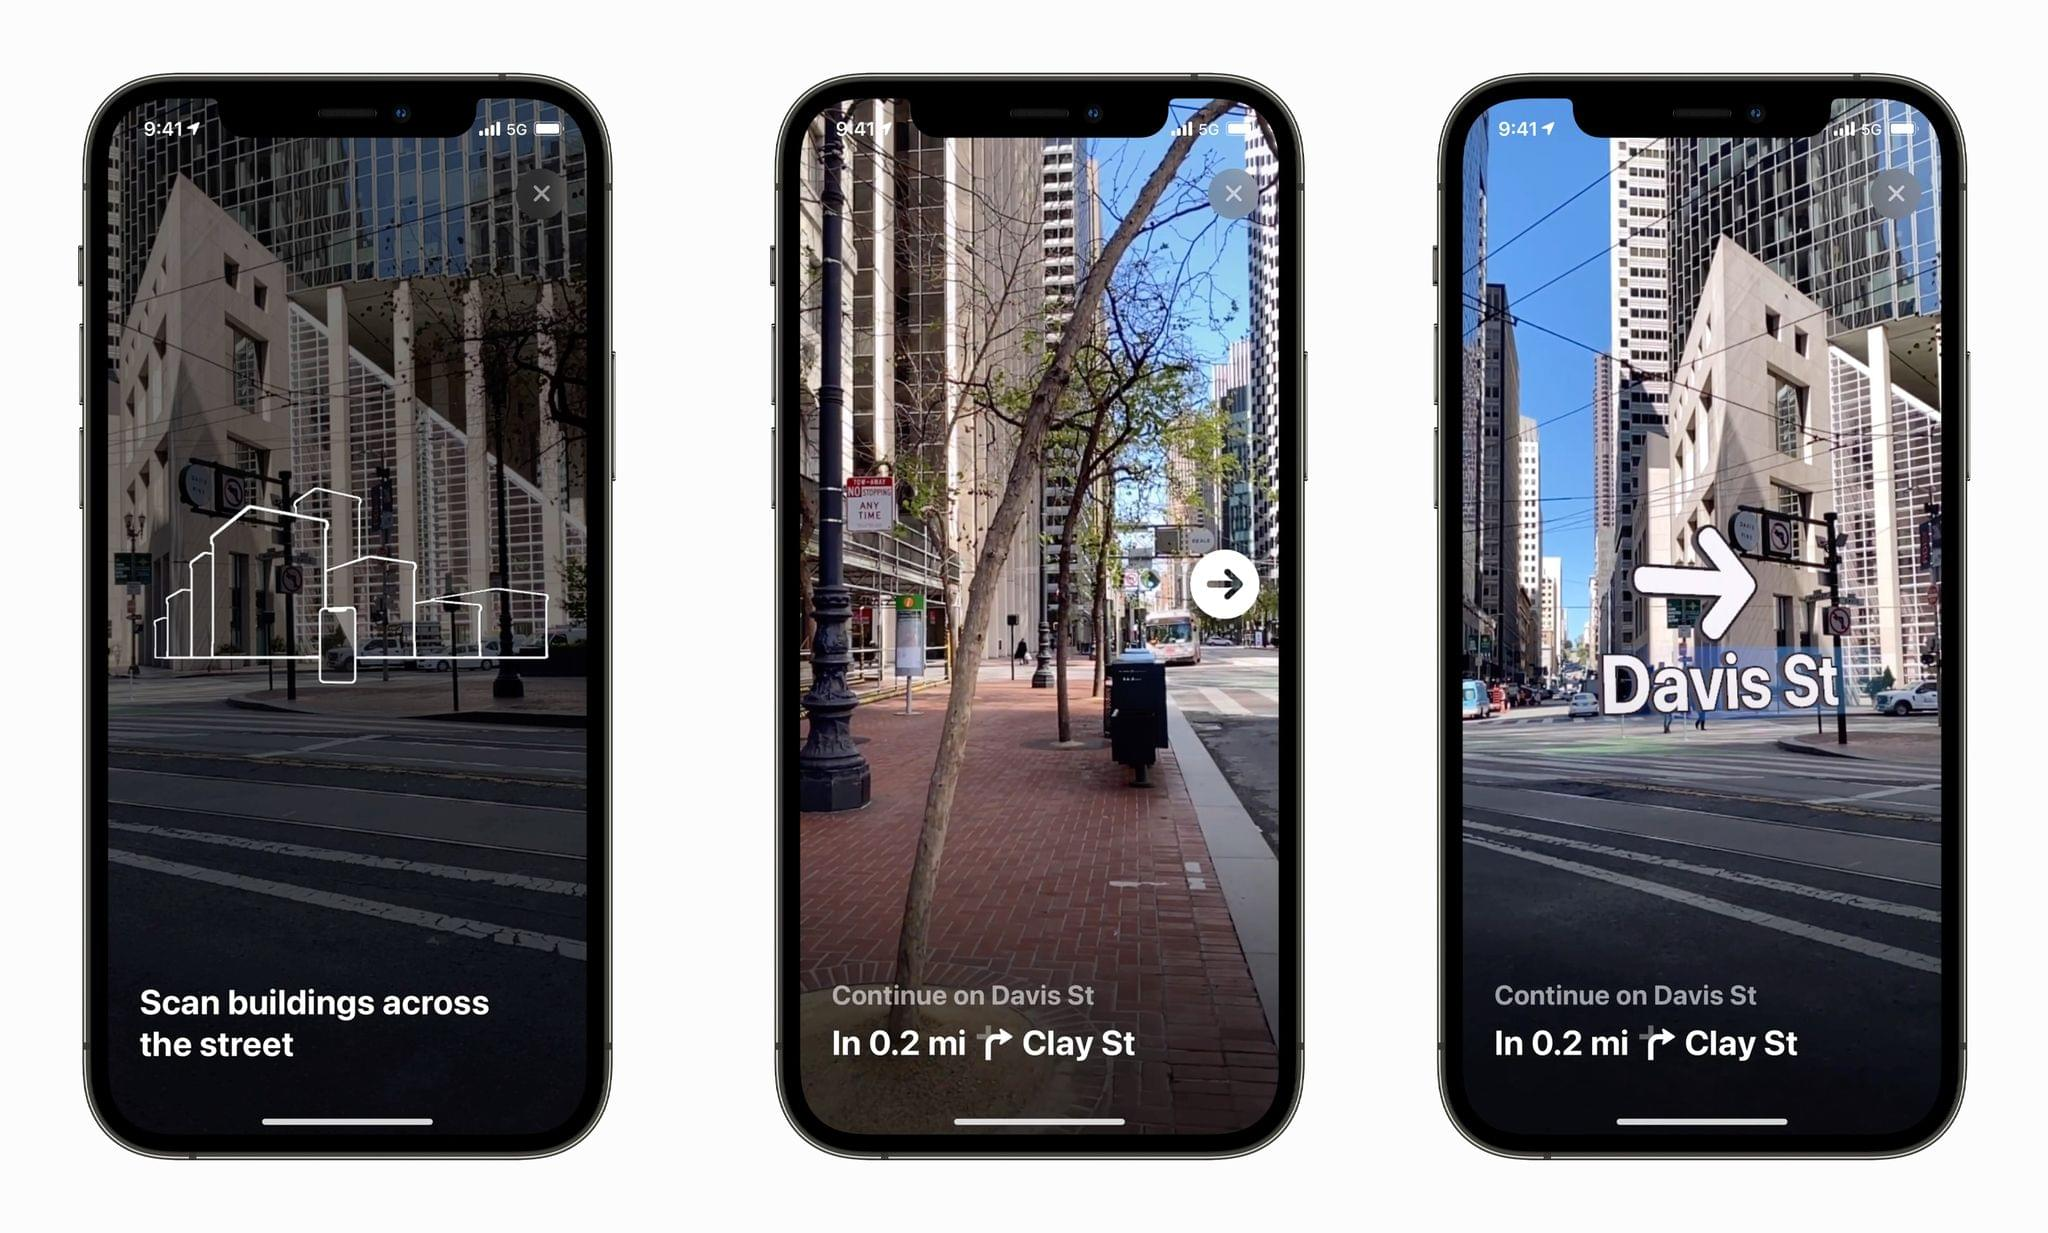 AR walking directions are coming to Maps. Source: Apple.